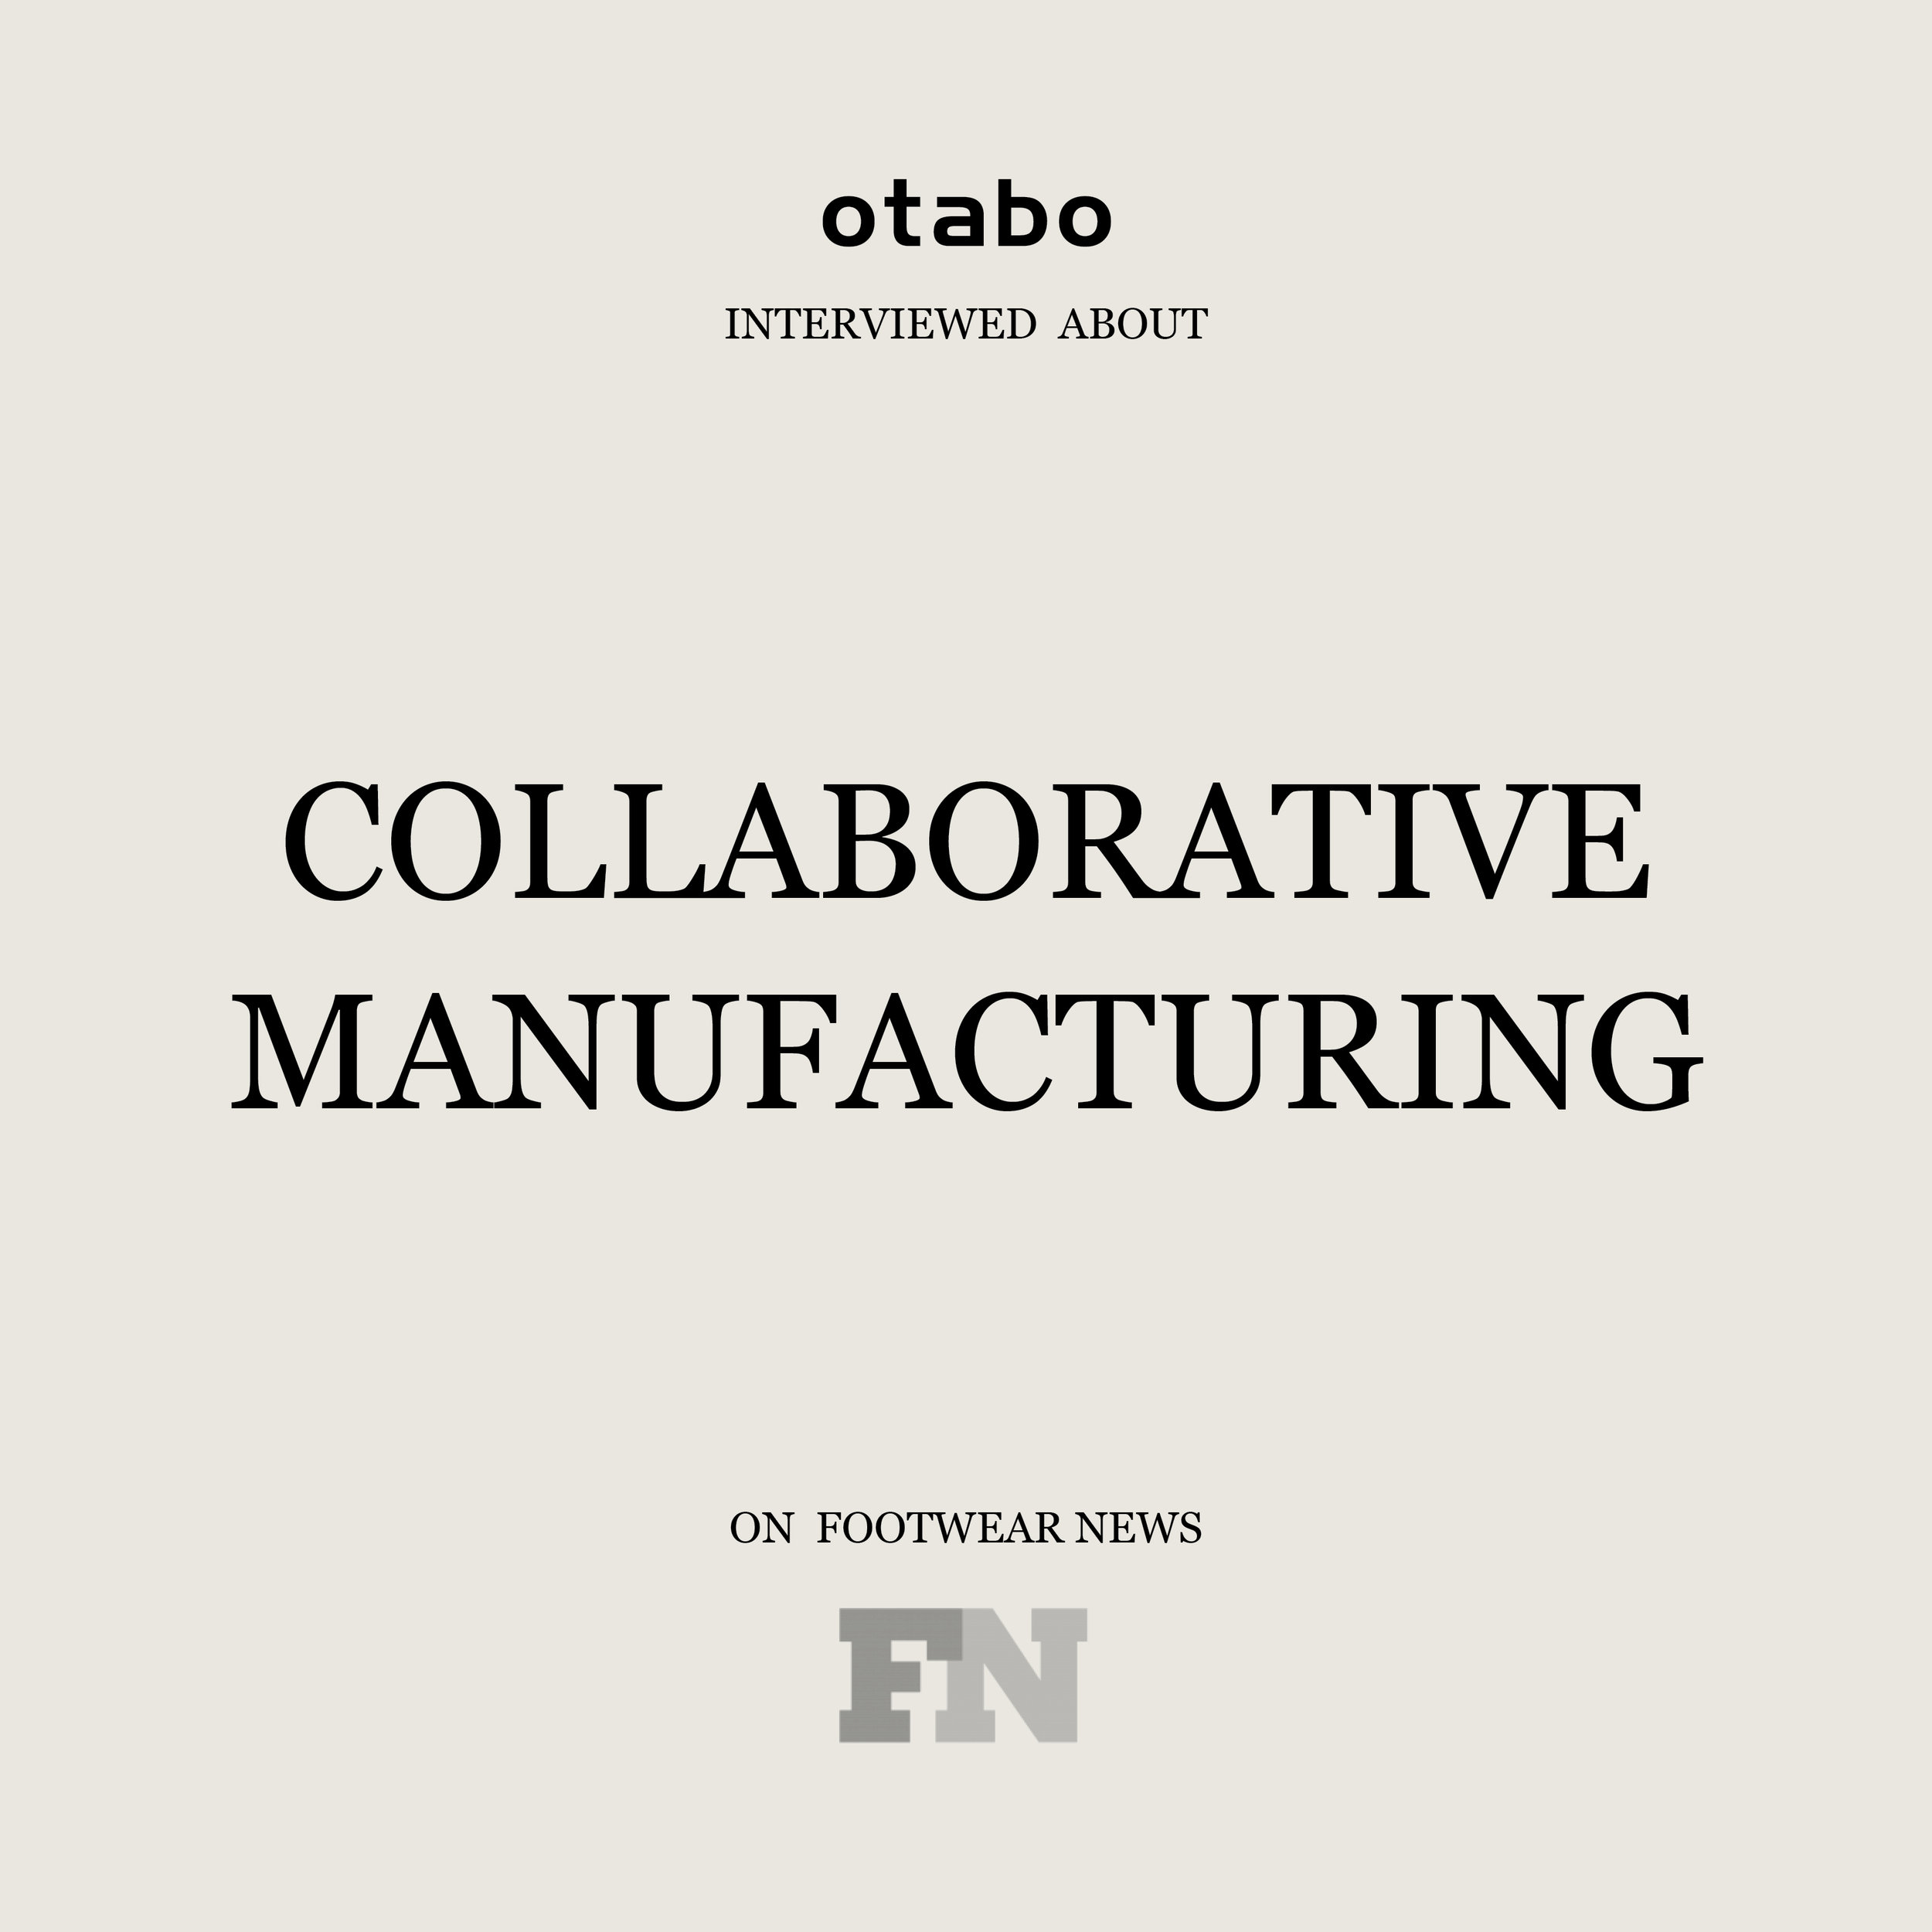 Collaborative Manufacturing, Footwear News